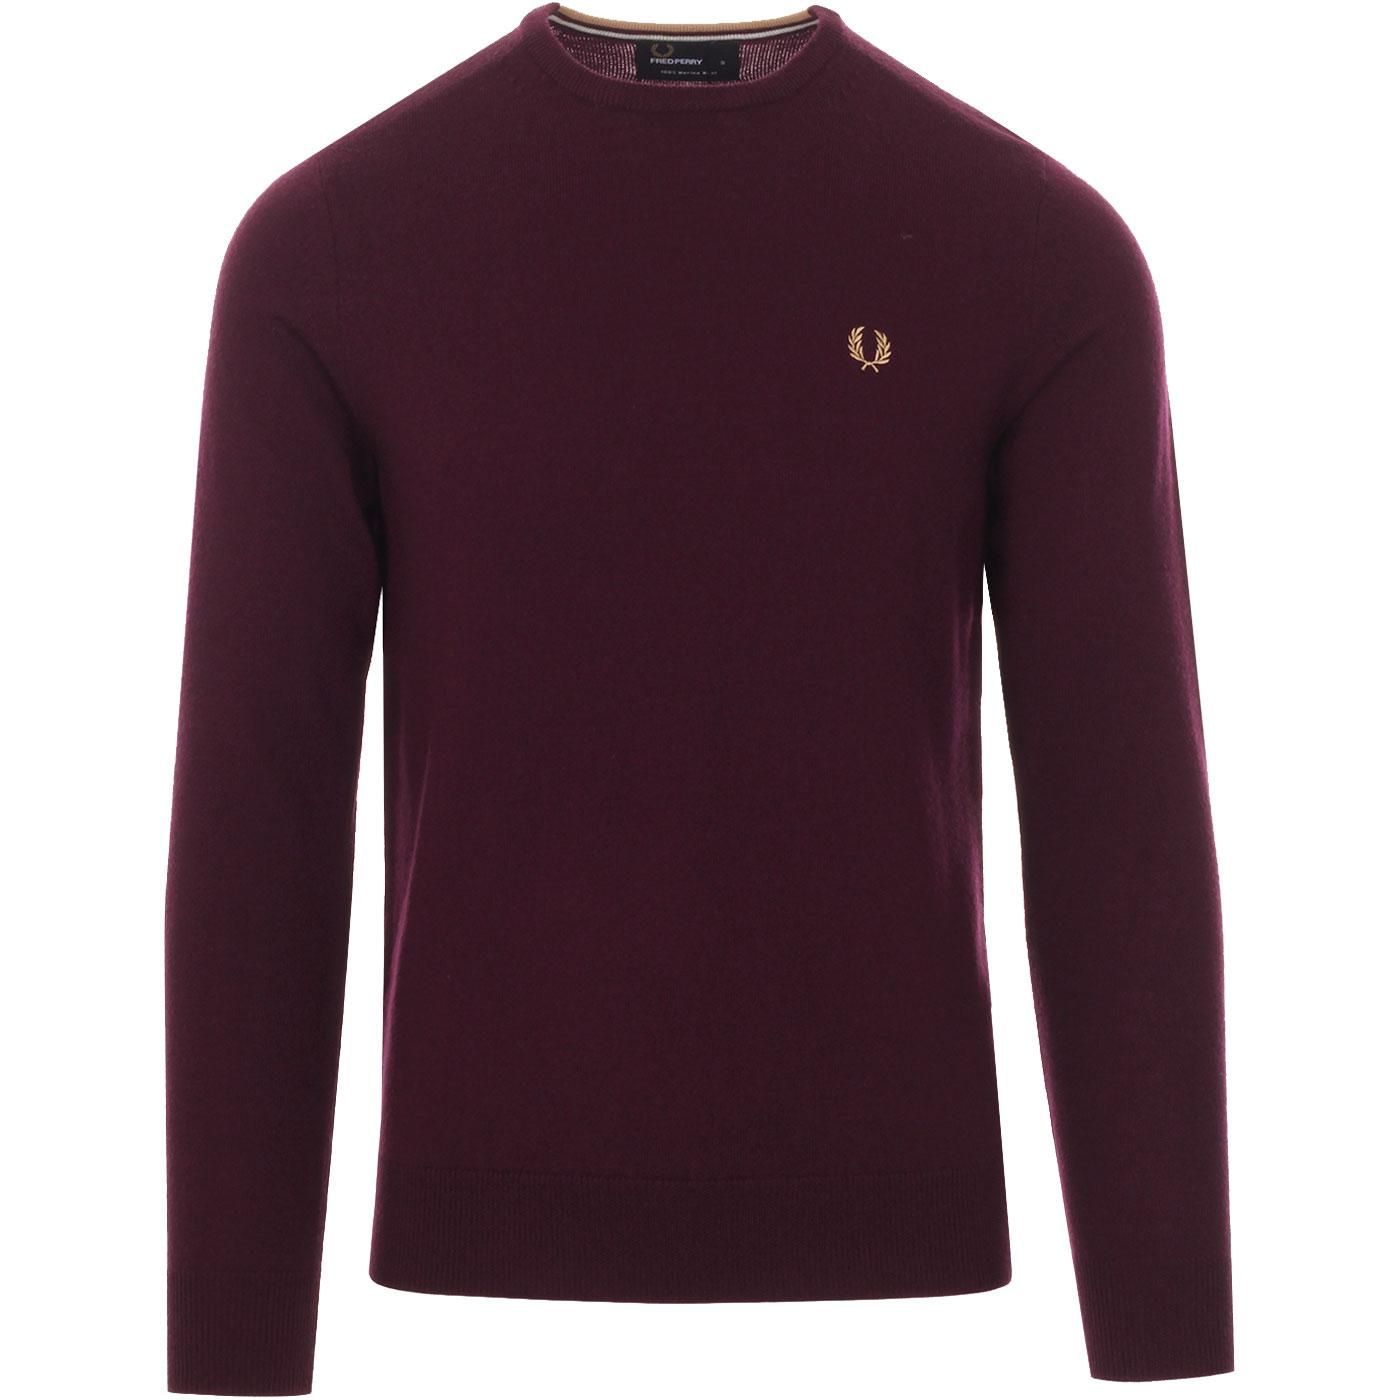 FRED PERRY Men's Mod Knitted Merino Wool Jumper M